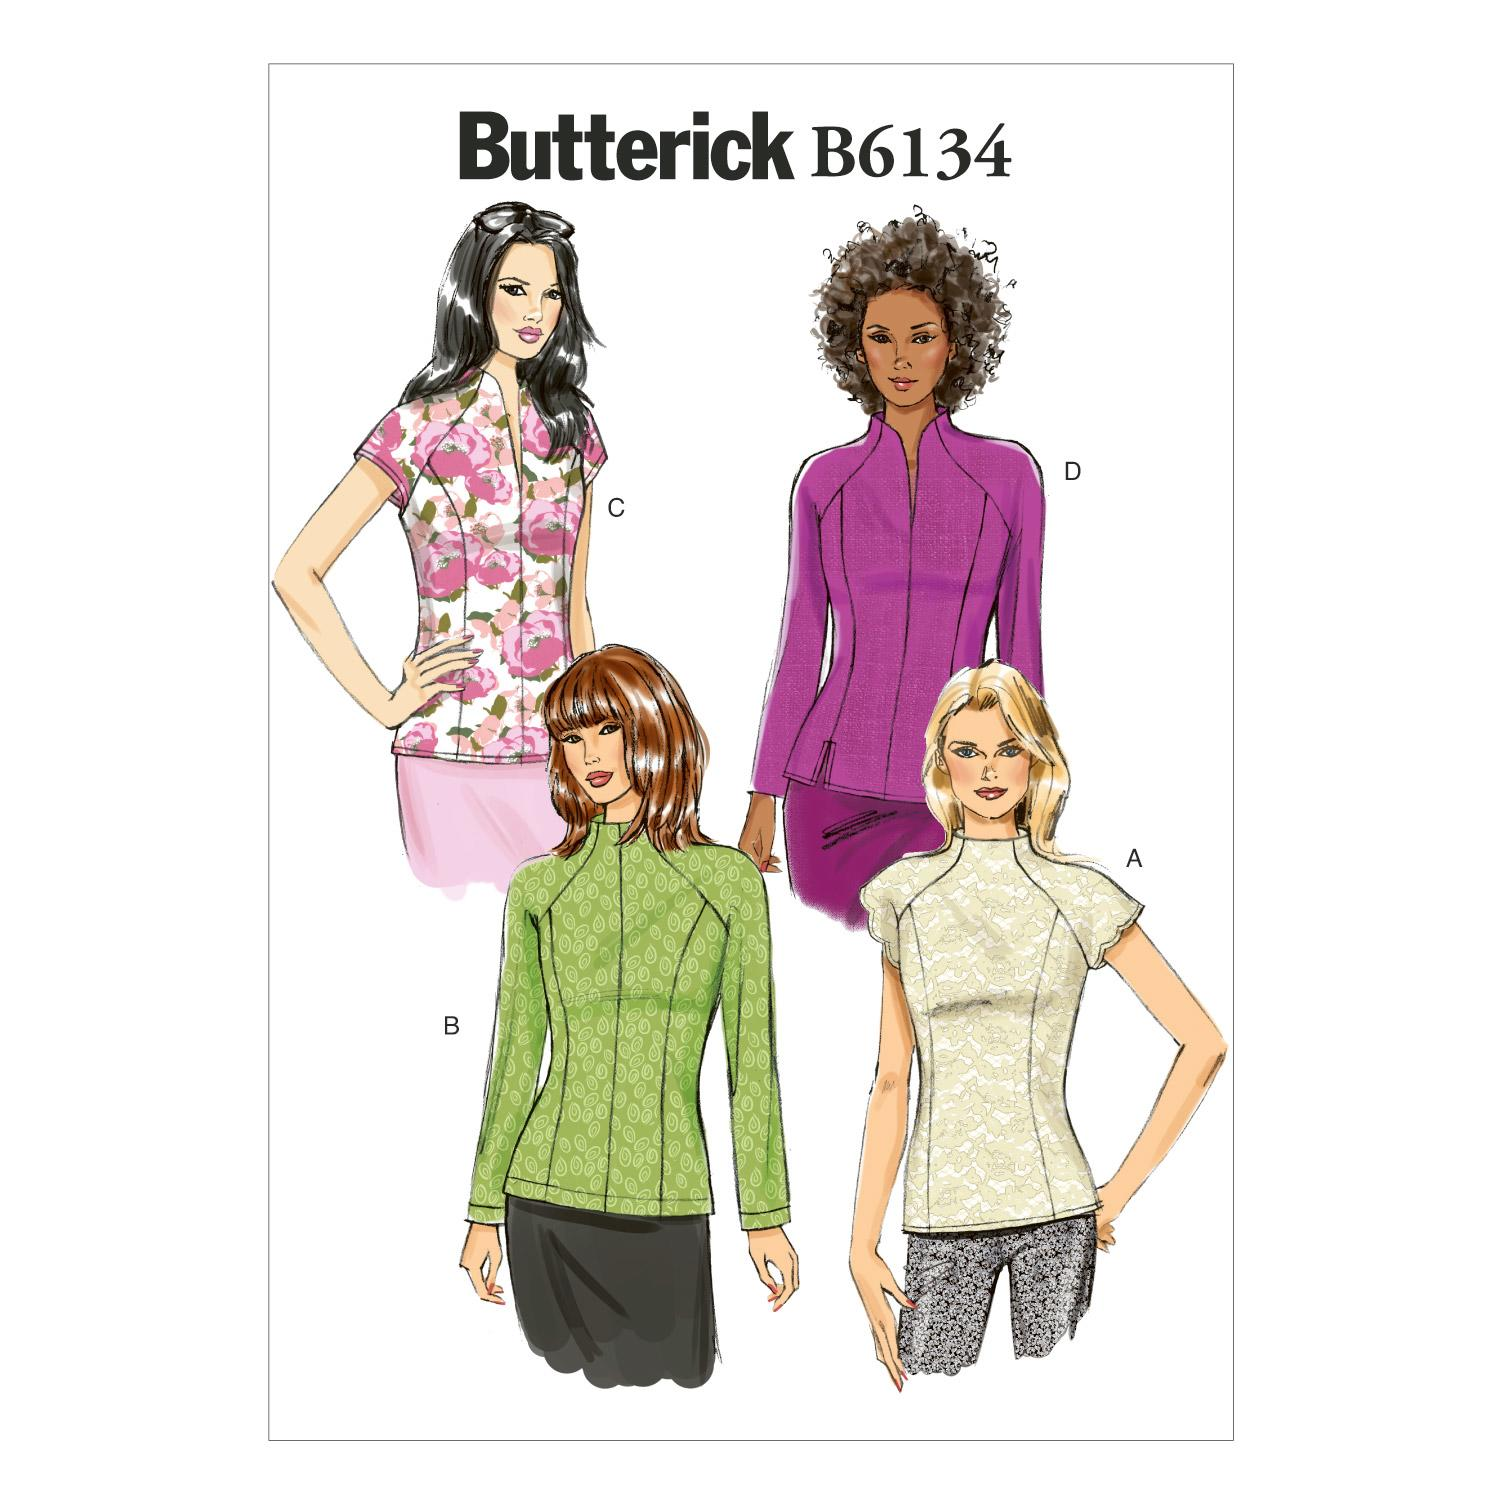 Butterick B6134 Misses' Top